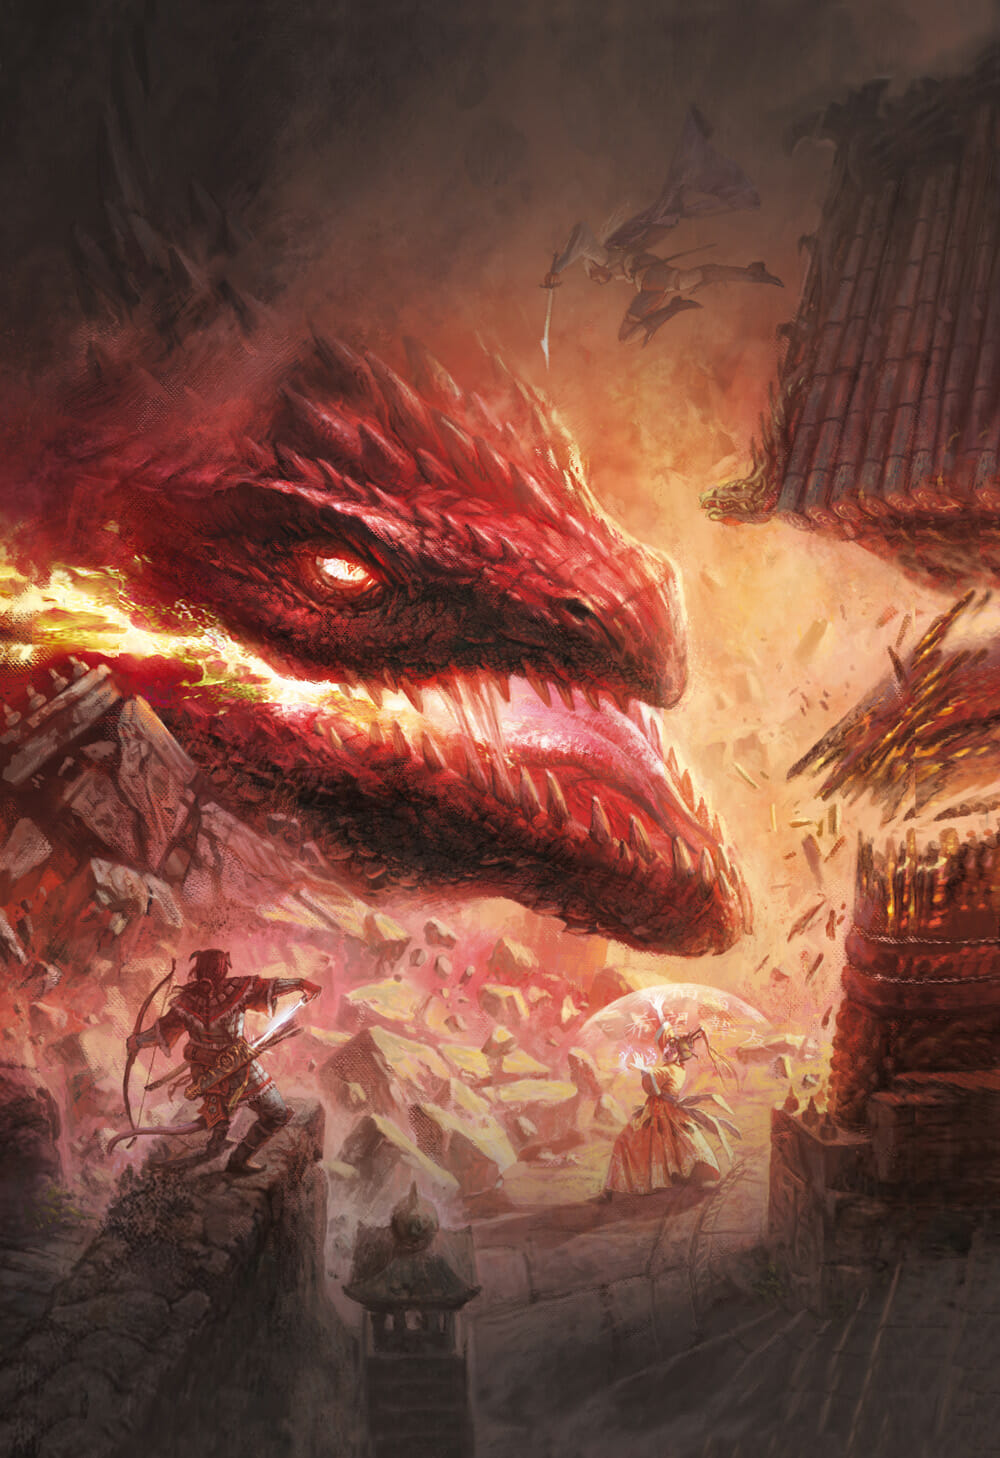 Fateforged - Red dragon